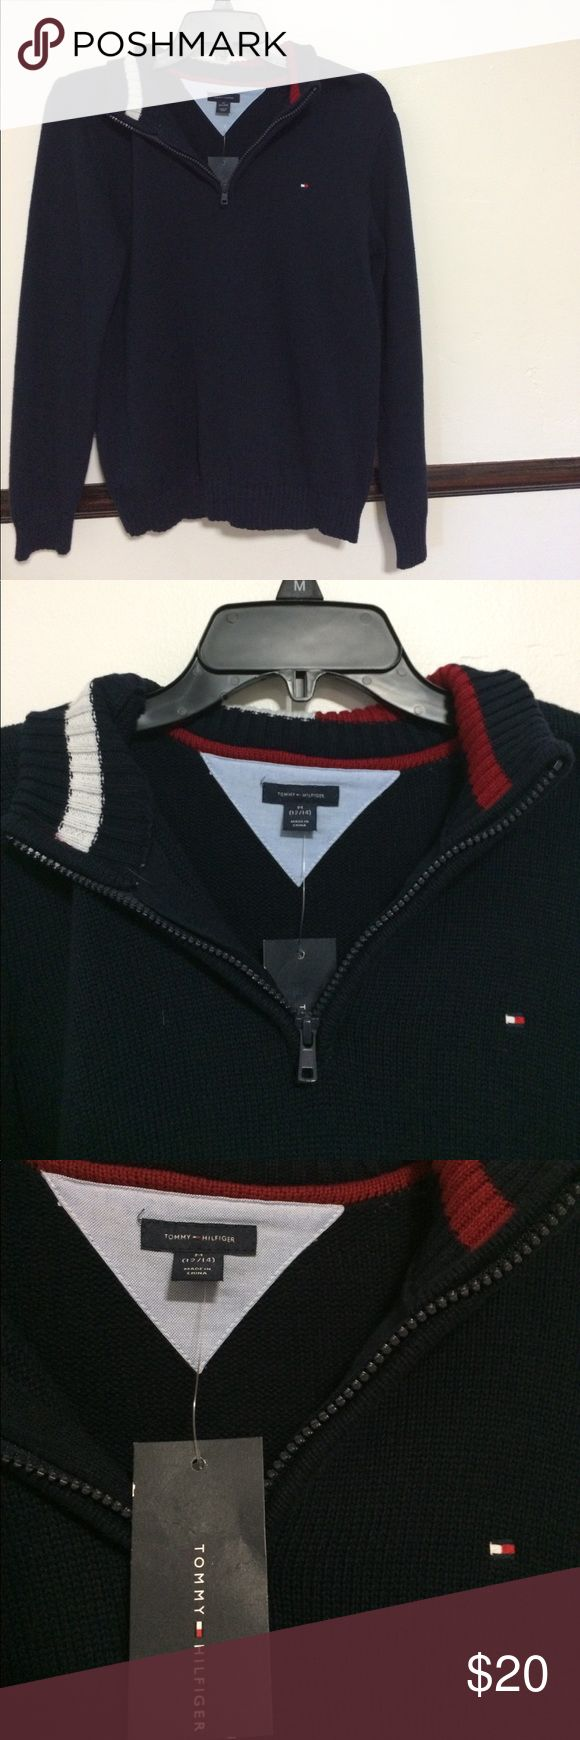 Tommy Hilfiger Polo Sweater Navy Blue Classic Polo Sweater by Tommy Hilfiger. It is brand new, with the tag, never been worn! Fits XS-M sized women. Also can fit men but might be a little tighter. Very classic design, Red and white around collar and has little logo on left chest area. Overall- great steal!! ( says Size M for 12-14 but fits perfectly on any other sizes) Tommy Hilfiger Sweaters Zip Up